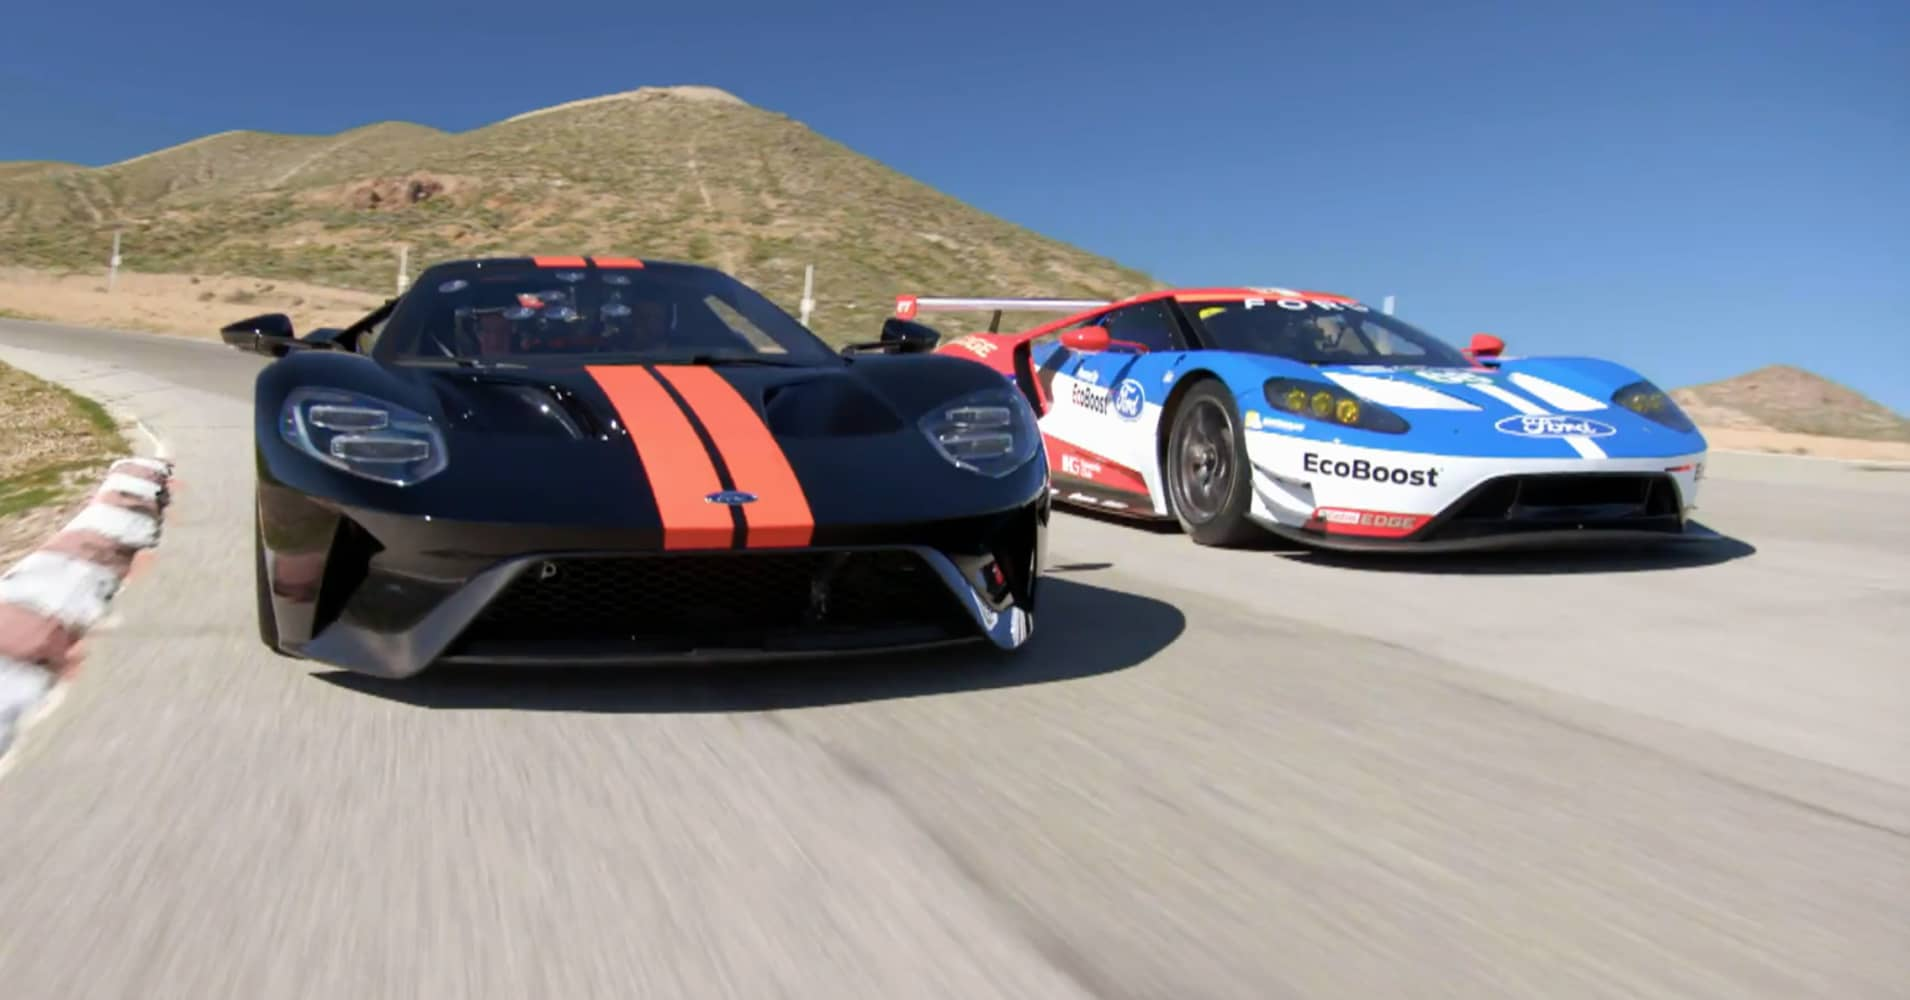 Ford ford gt images : CNBC Jay Leno's Garage 2017 Ford GT test drive